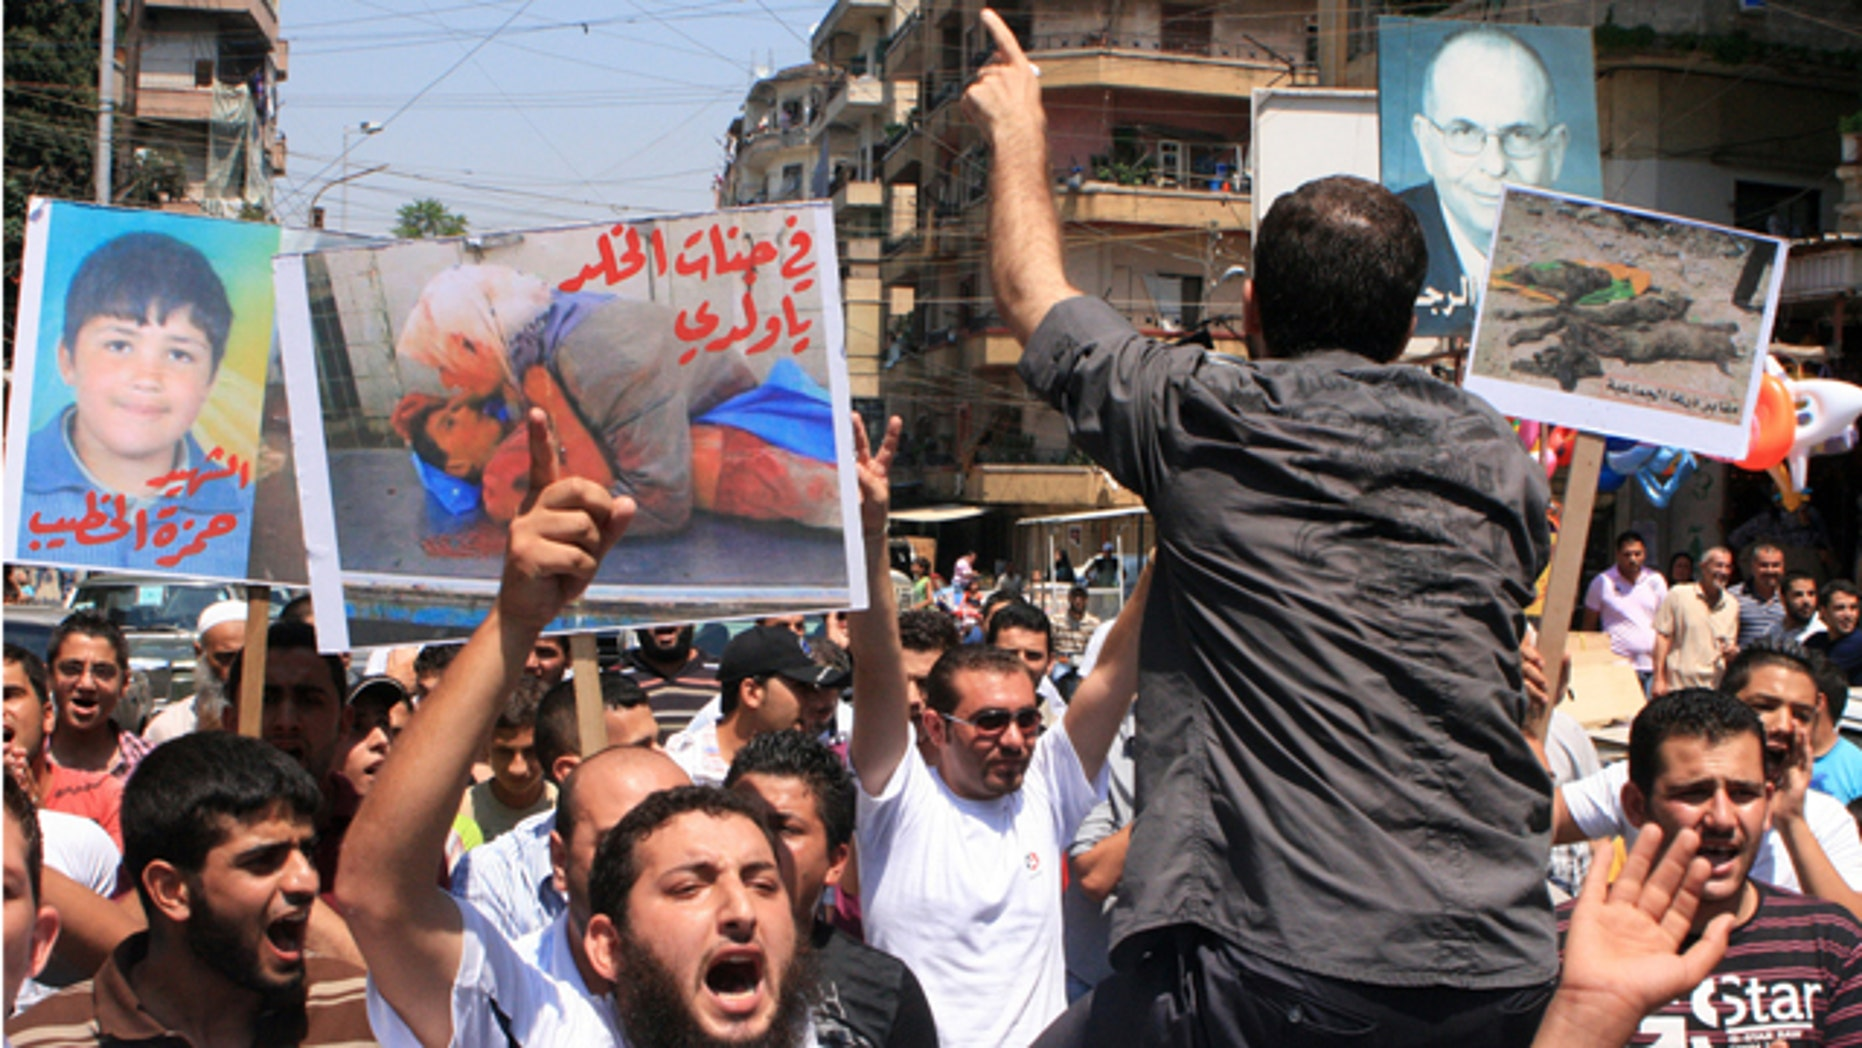 """July 15: Lebanese protesters shout slogans as they carry banners in Arabic that read:"""" you are in heaven my son,"""" center, """"the martyr Hamza el-Khatib,"""" left, and """"Daraa mass graves,"""" right, during a rally in solidarity with Syrian anti-government protesters in the northern city of Tripoli, Lebanon. Syrian security forces fired on protesters in the capital and other major cities Friday, killing at least 14 people as hundreds of thousands gathered for some of the largest anti-government rallies since the uprising began in March, witnesses and activists said."""